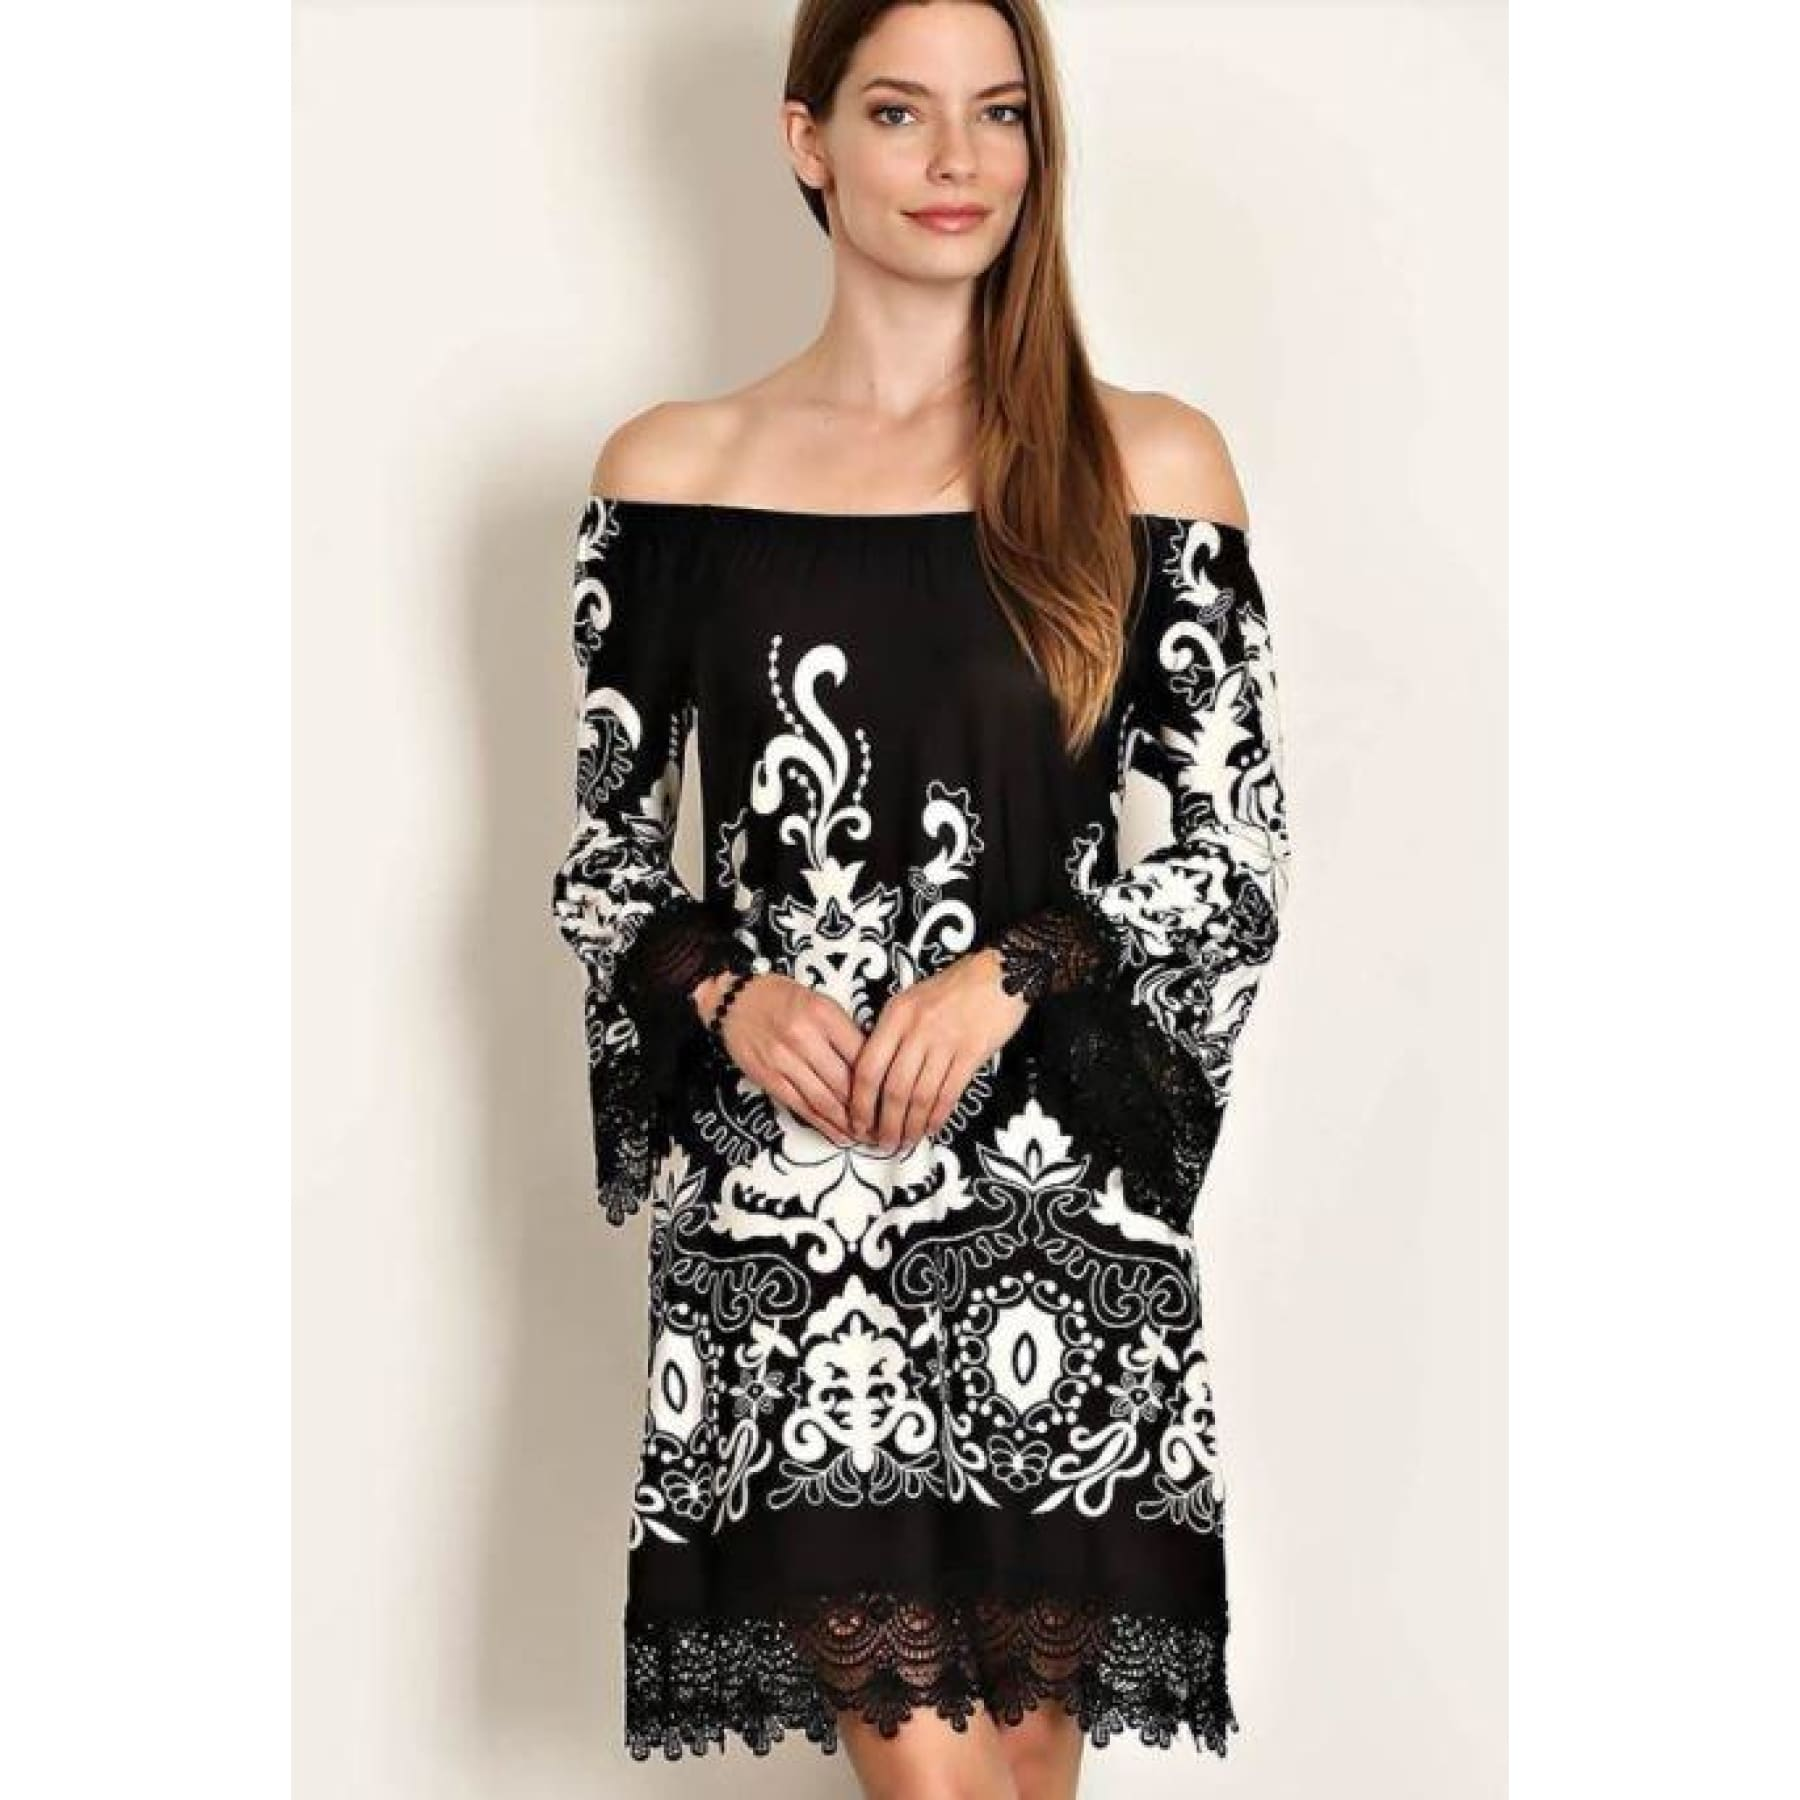 Black and White Paisley Dress - S - Dress